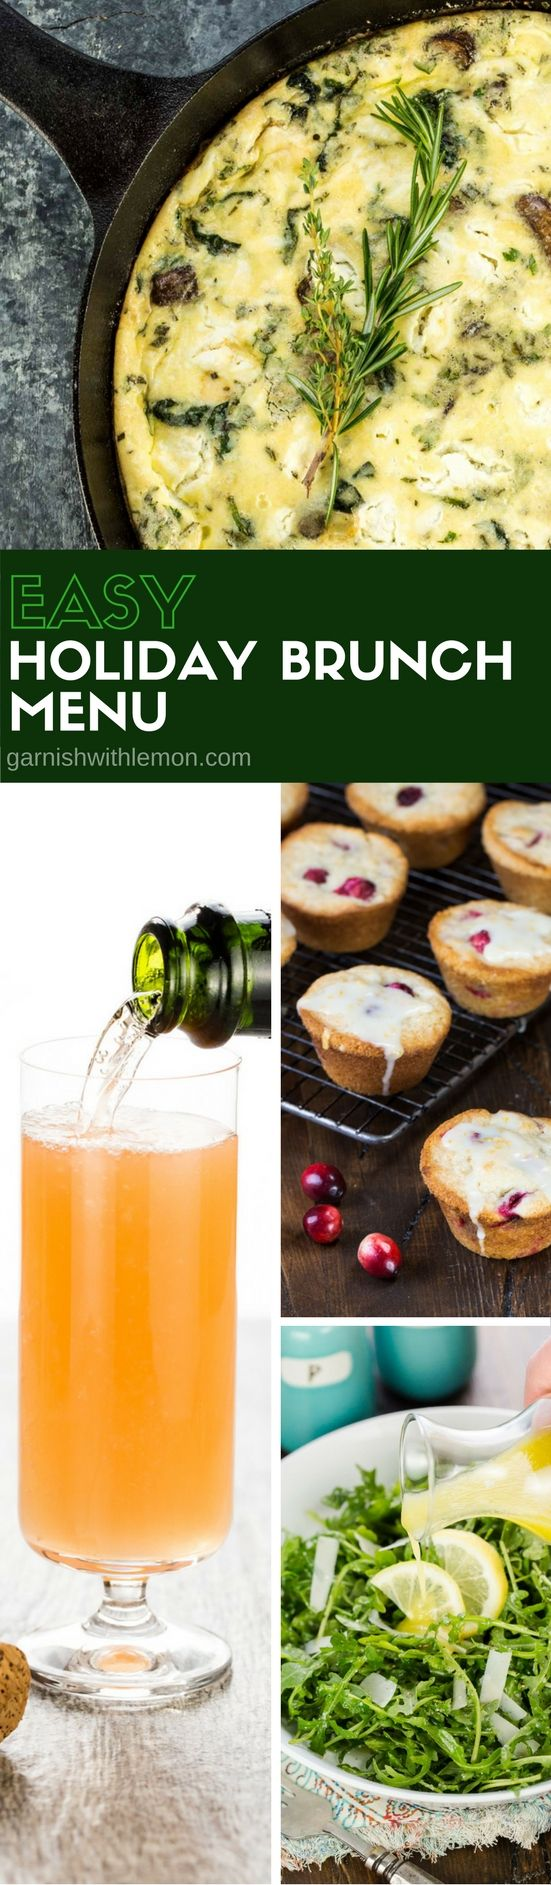 Hosting brunch doesn't need to be stressful! Get all of your brunch recipes from our Easy Holiday Brunch Menu.